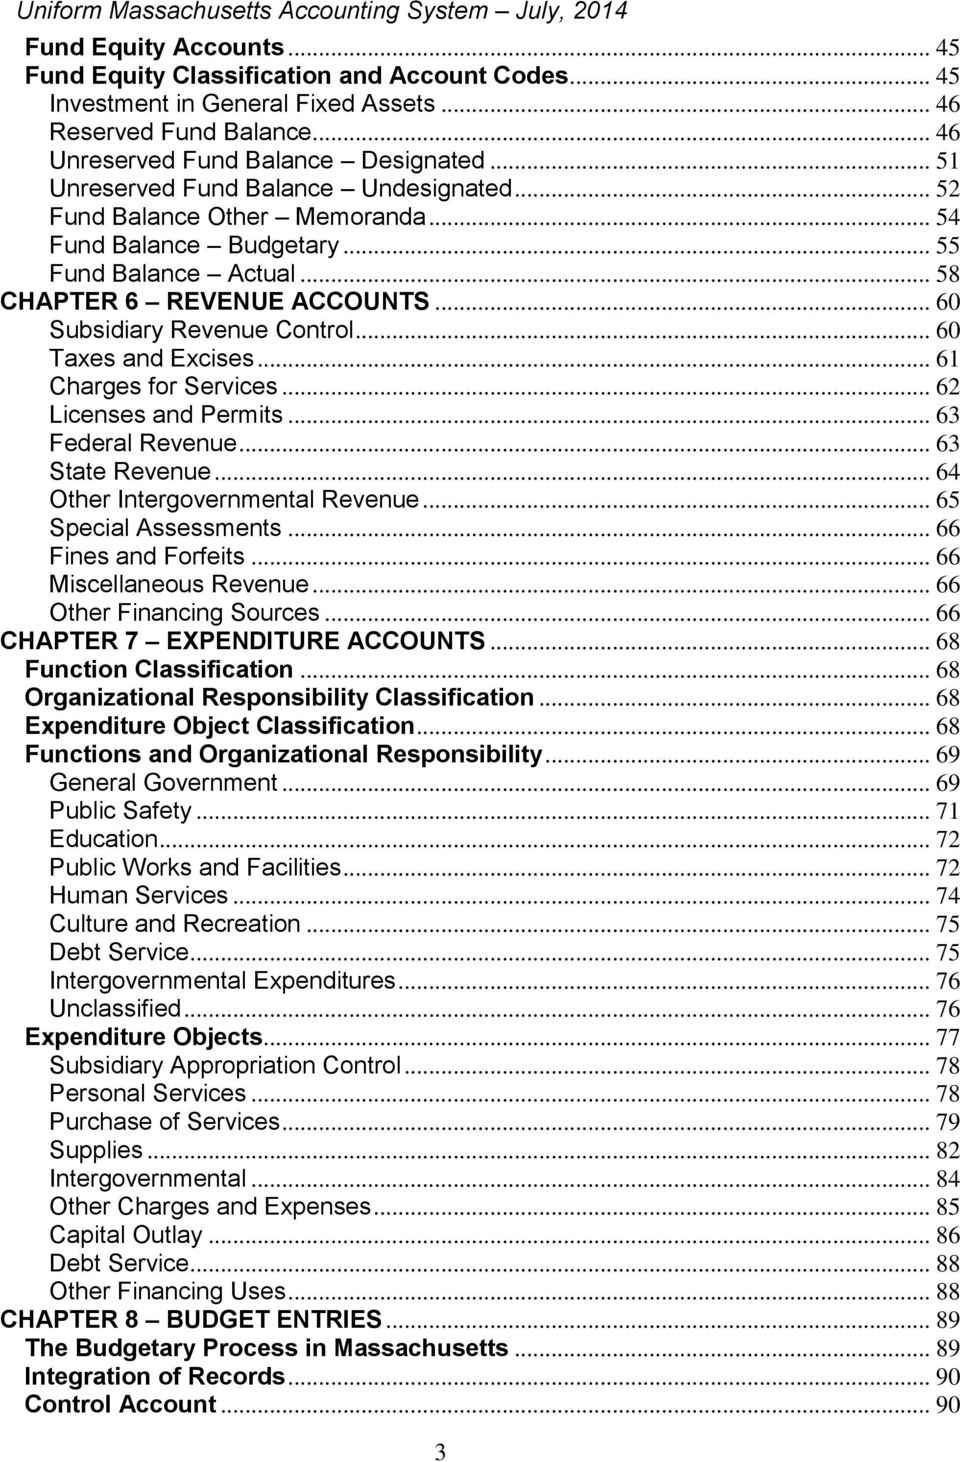 .. 58 CHAPTER 6 REVENUE ACCOUNTS... 60 Subsidiary Revenue Control... 60 Taxes and Excises... 61 Charges for Services... 62 Licenses and Permits... 63 Federal Revenue... 63 State Revenue.